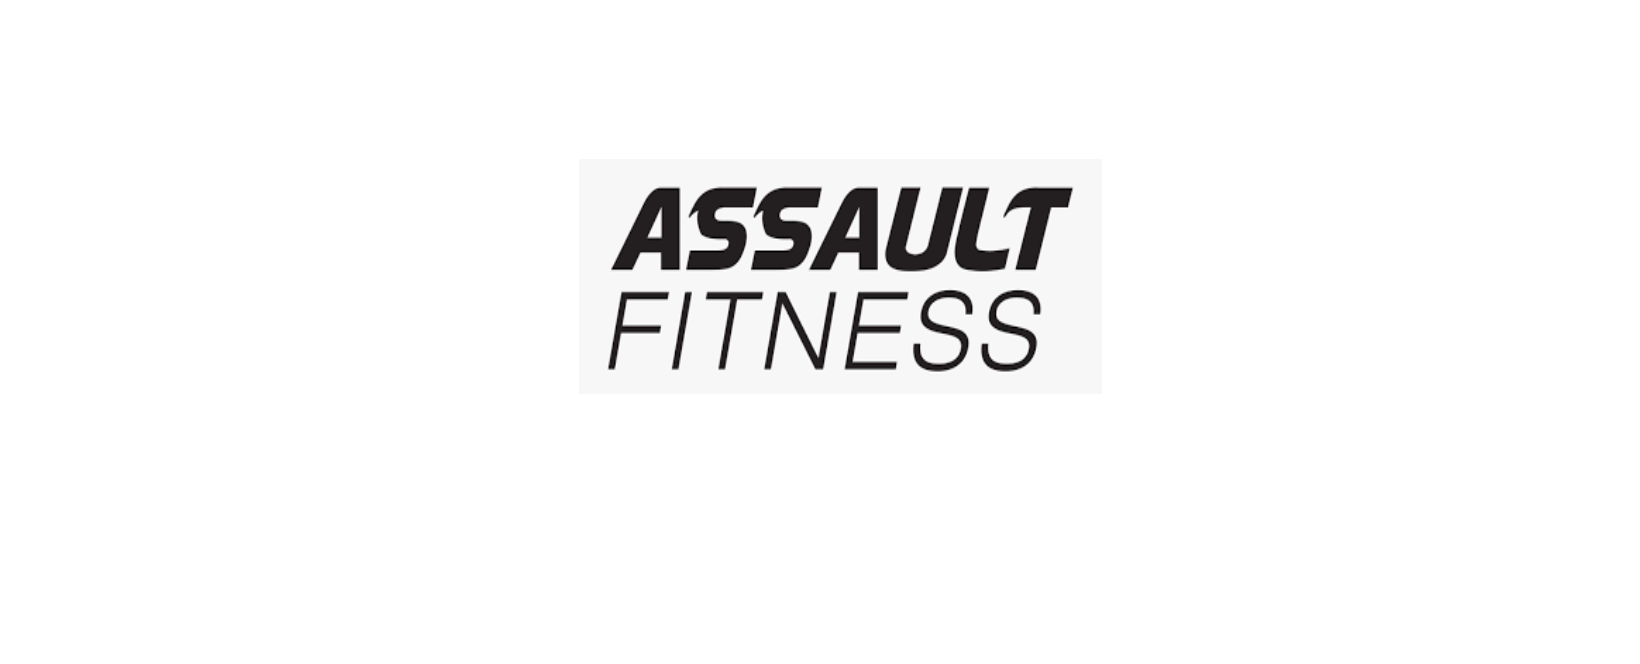 Assault Fitness Review – Get the Best for the Price!